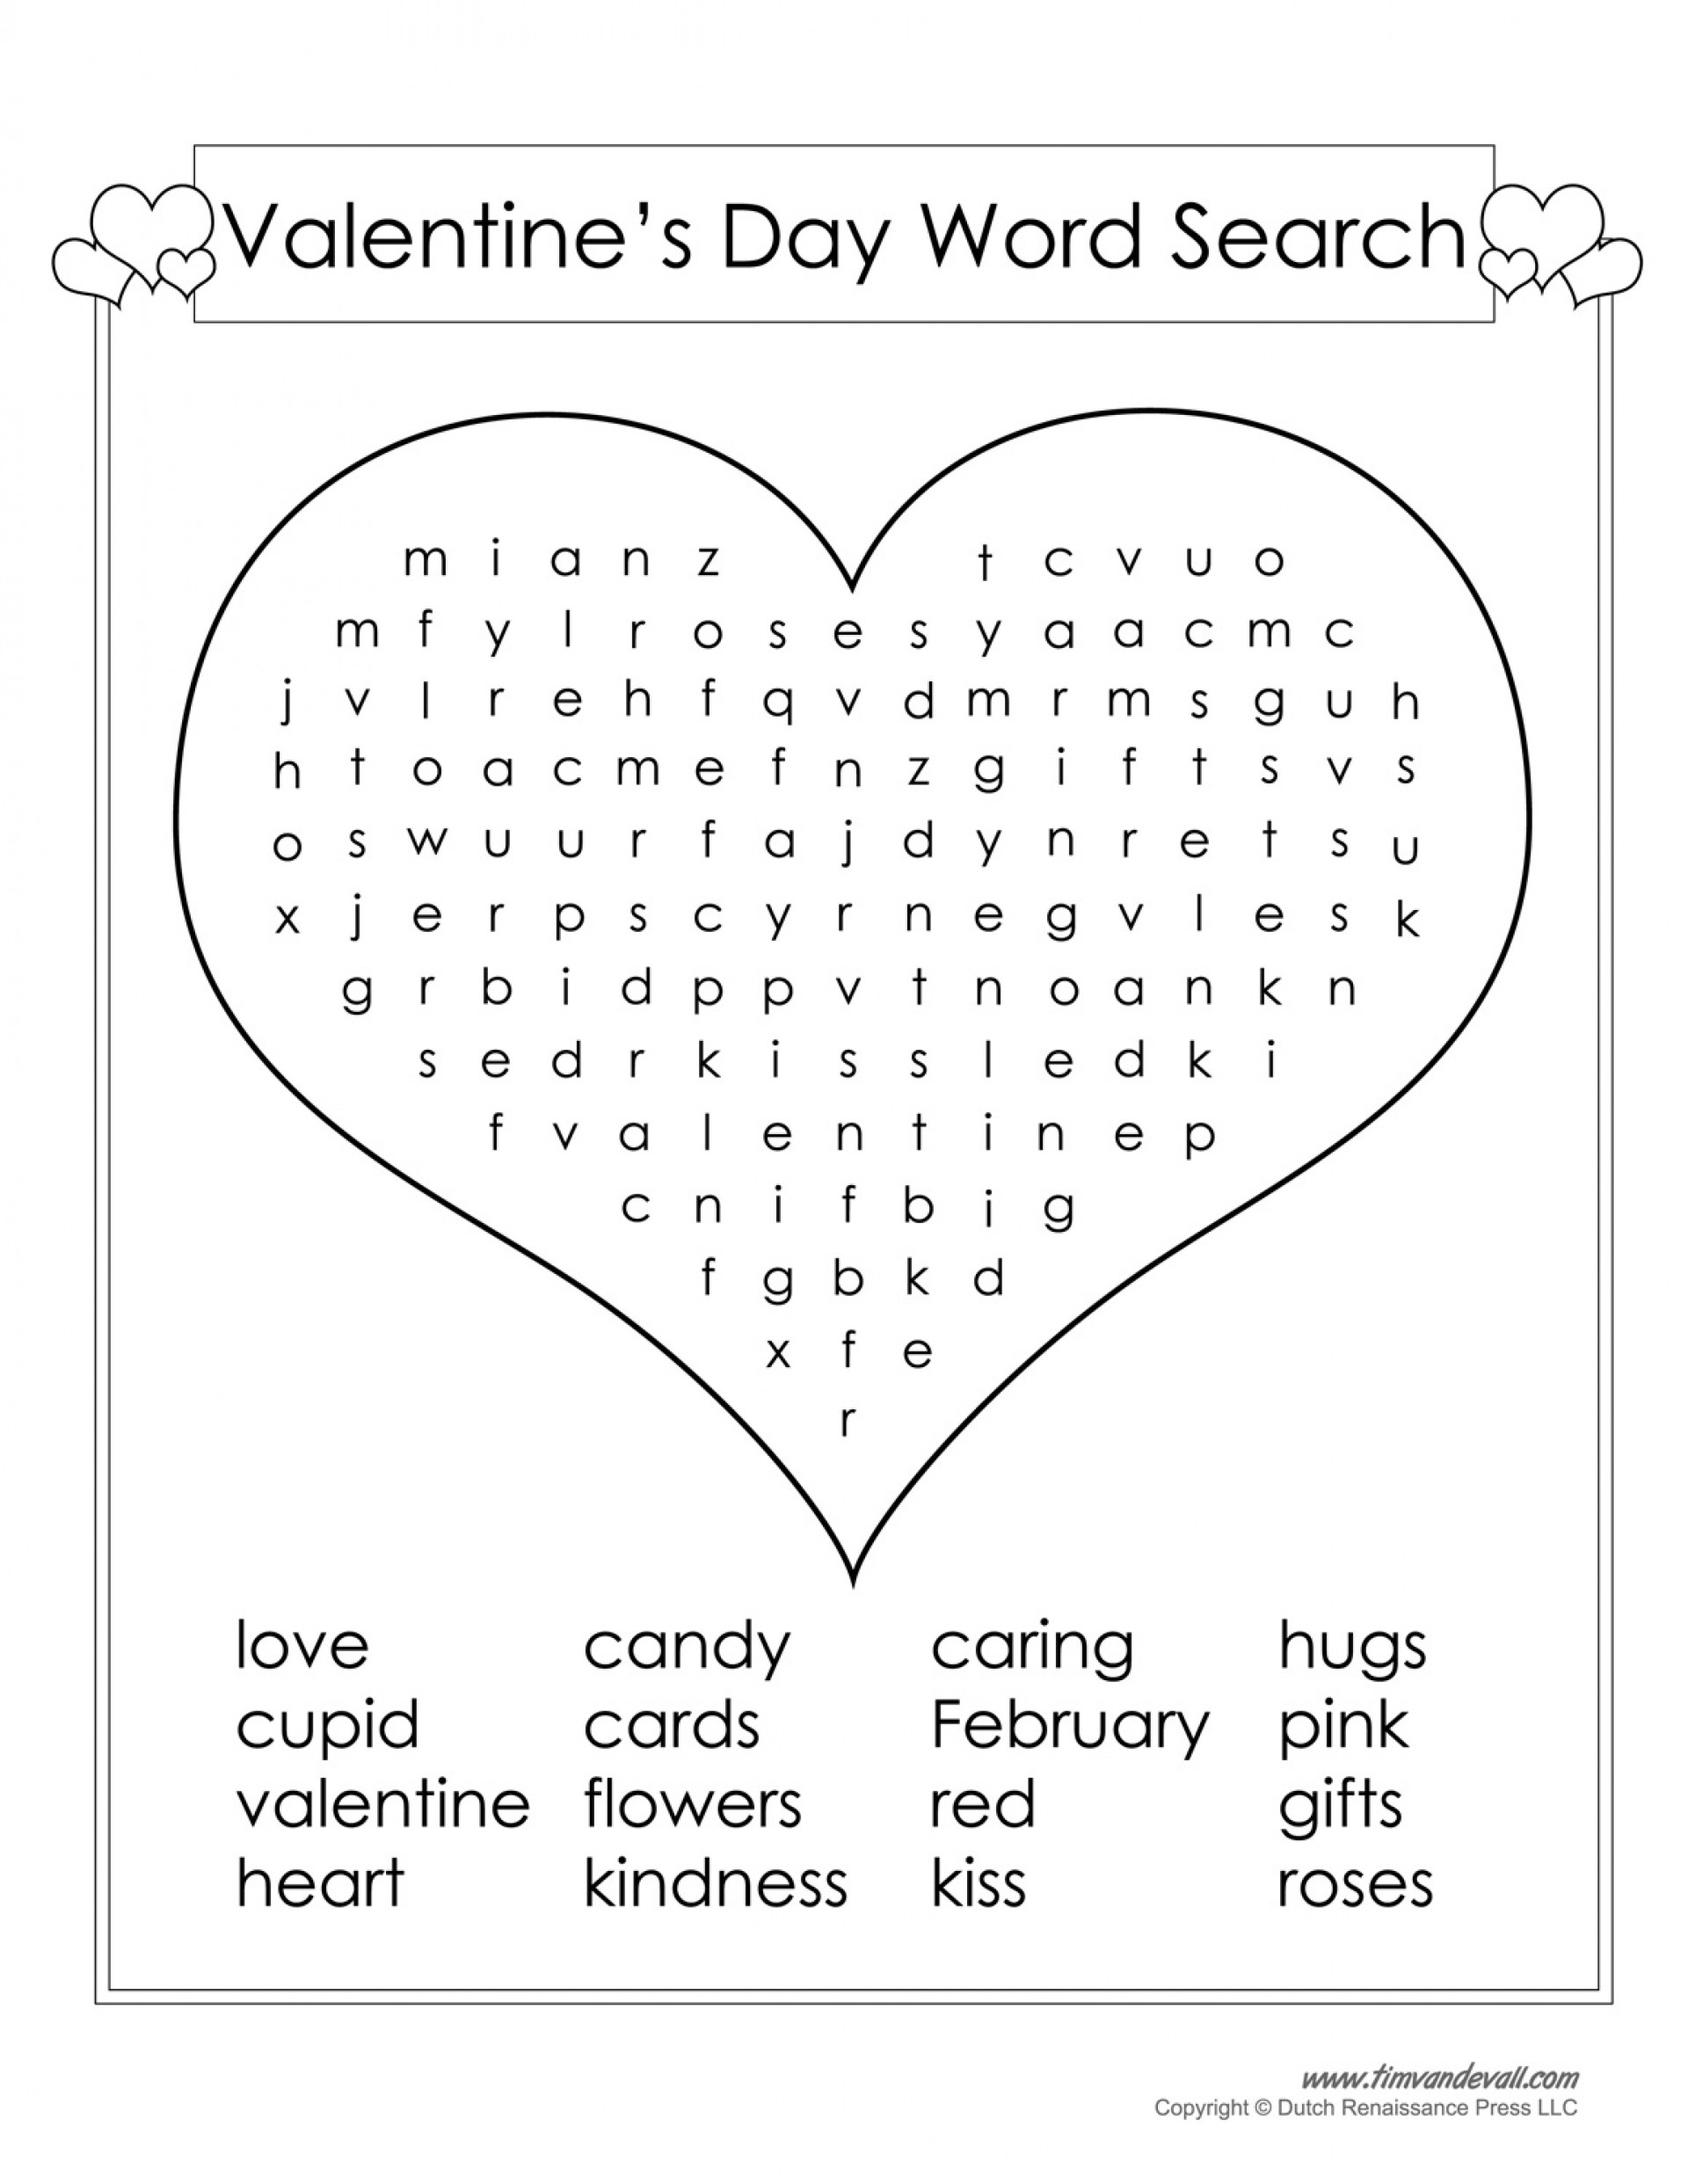 Valentines Day Word Search Large Light Pink Valentine S Crossword - Valentine Crossword Puzzles Printable